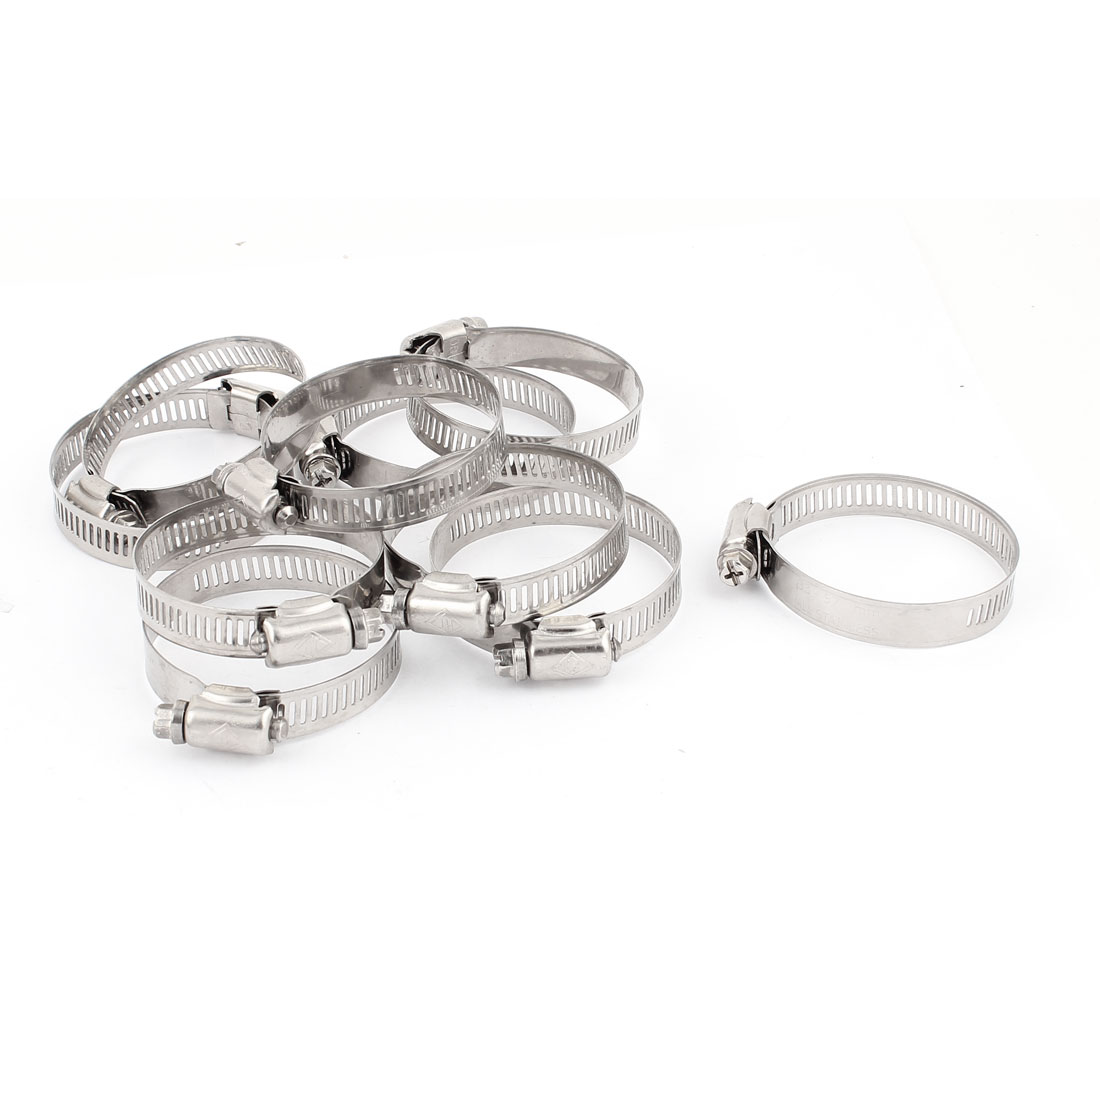 33mm-57mm Adjustable Stainless Steel Worm Gear Hose Clamps Silver Tone 10 Pcs